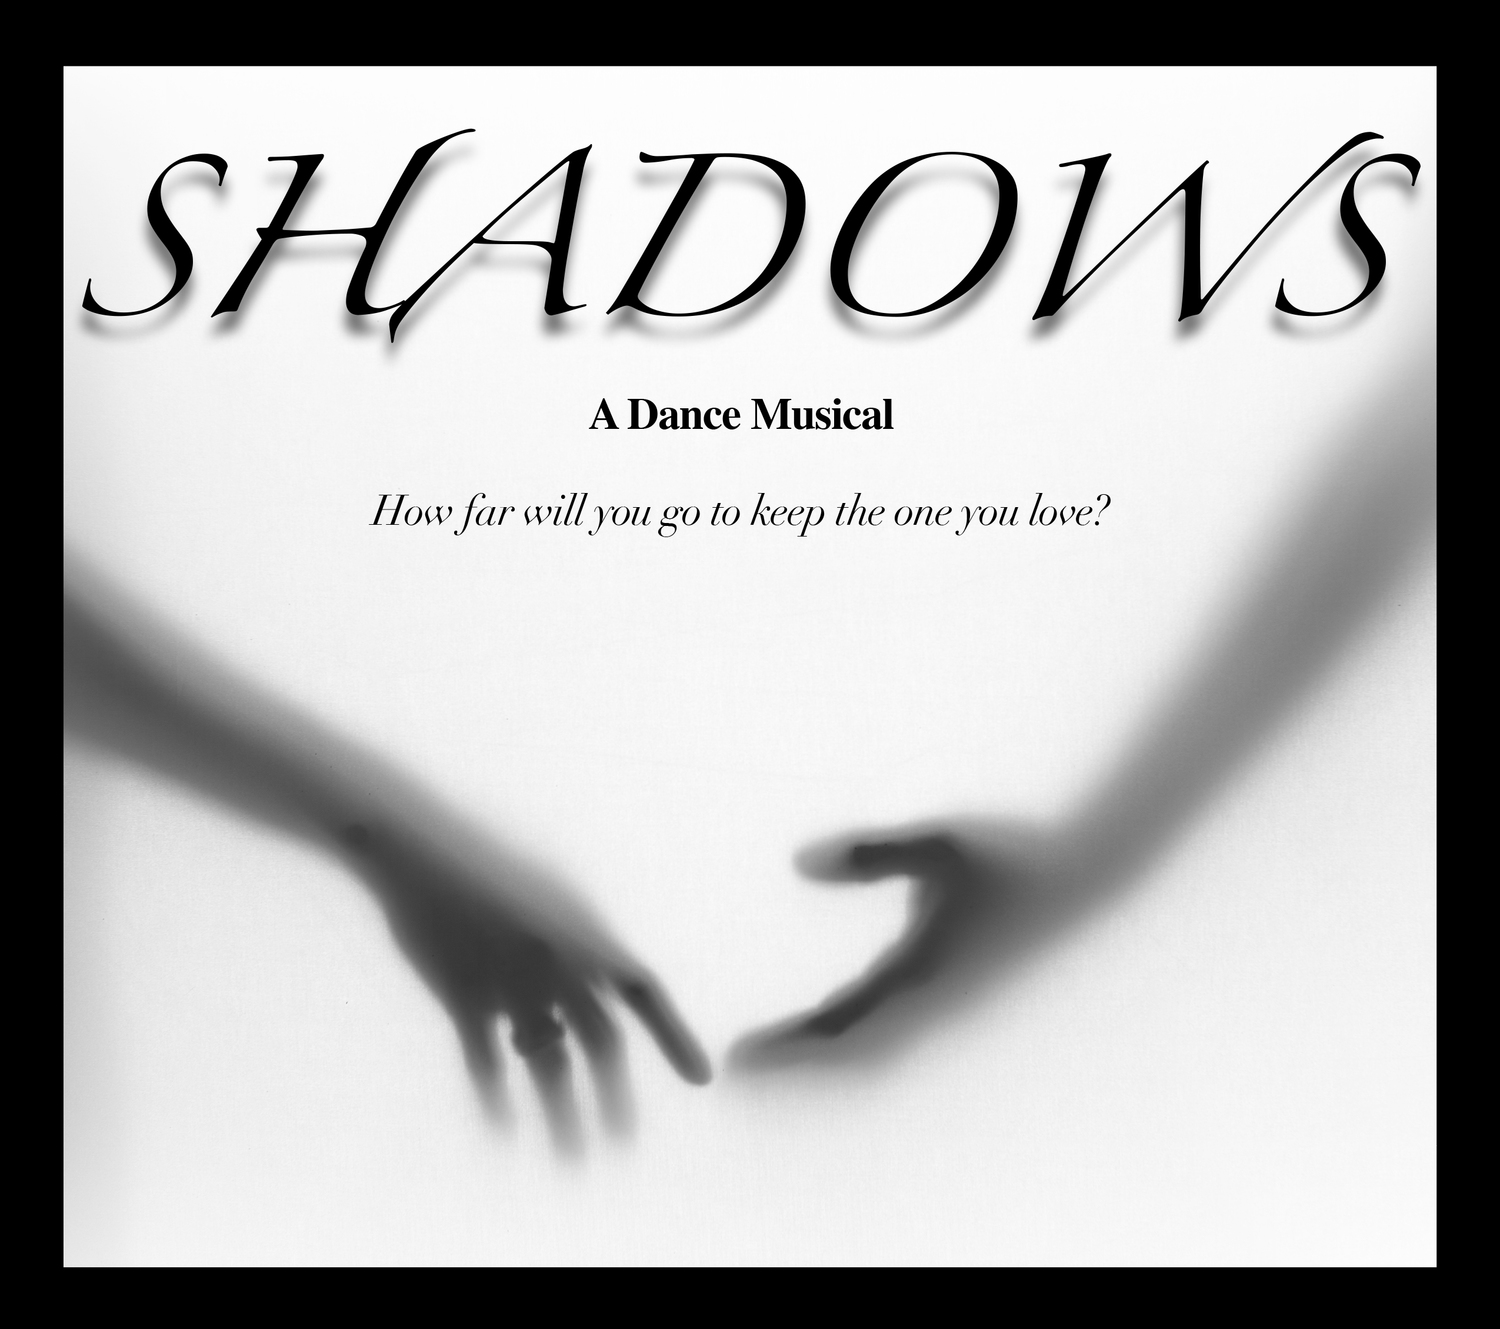 Tony Nominee Joey McKneely Presents SHADOWS, A New Dance Musical